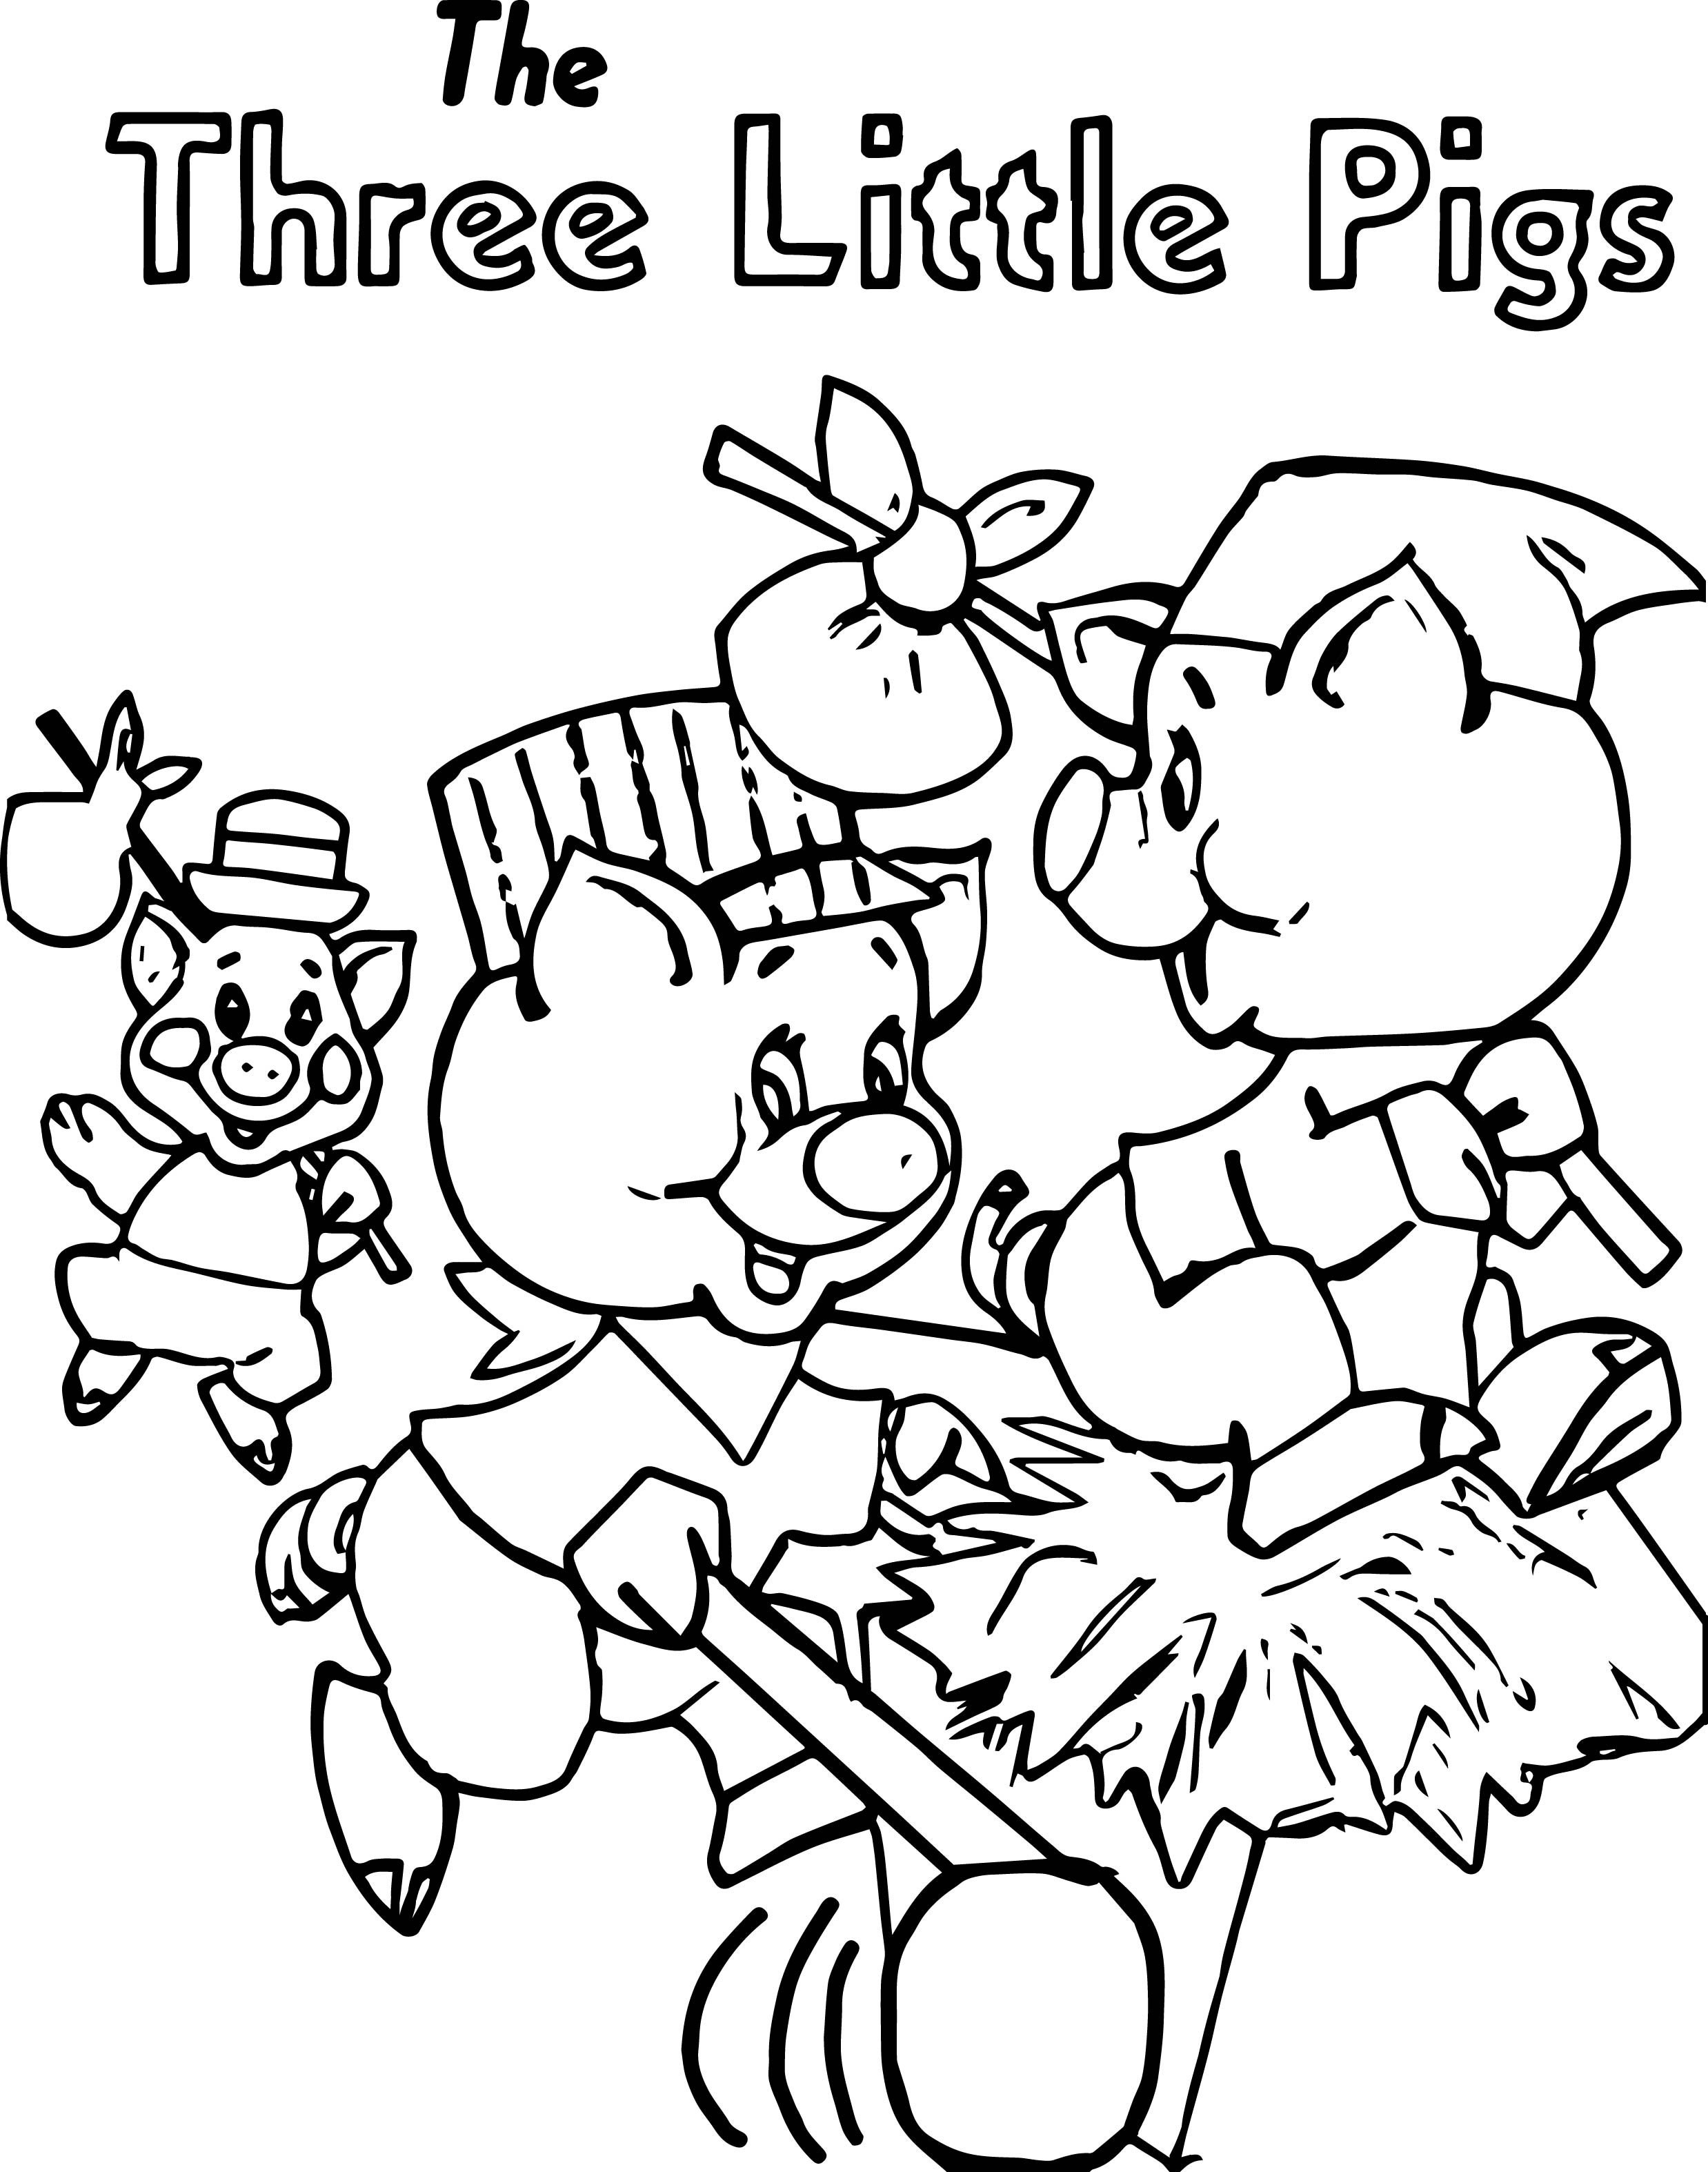 Running the three little pigs coloring page Coloring book 3